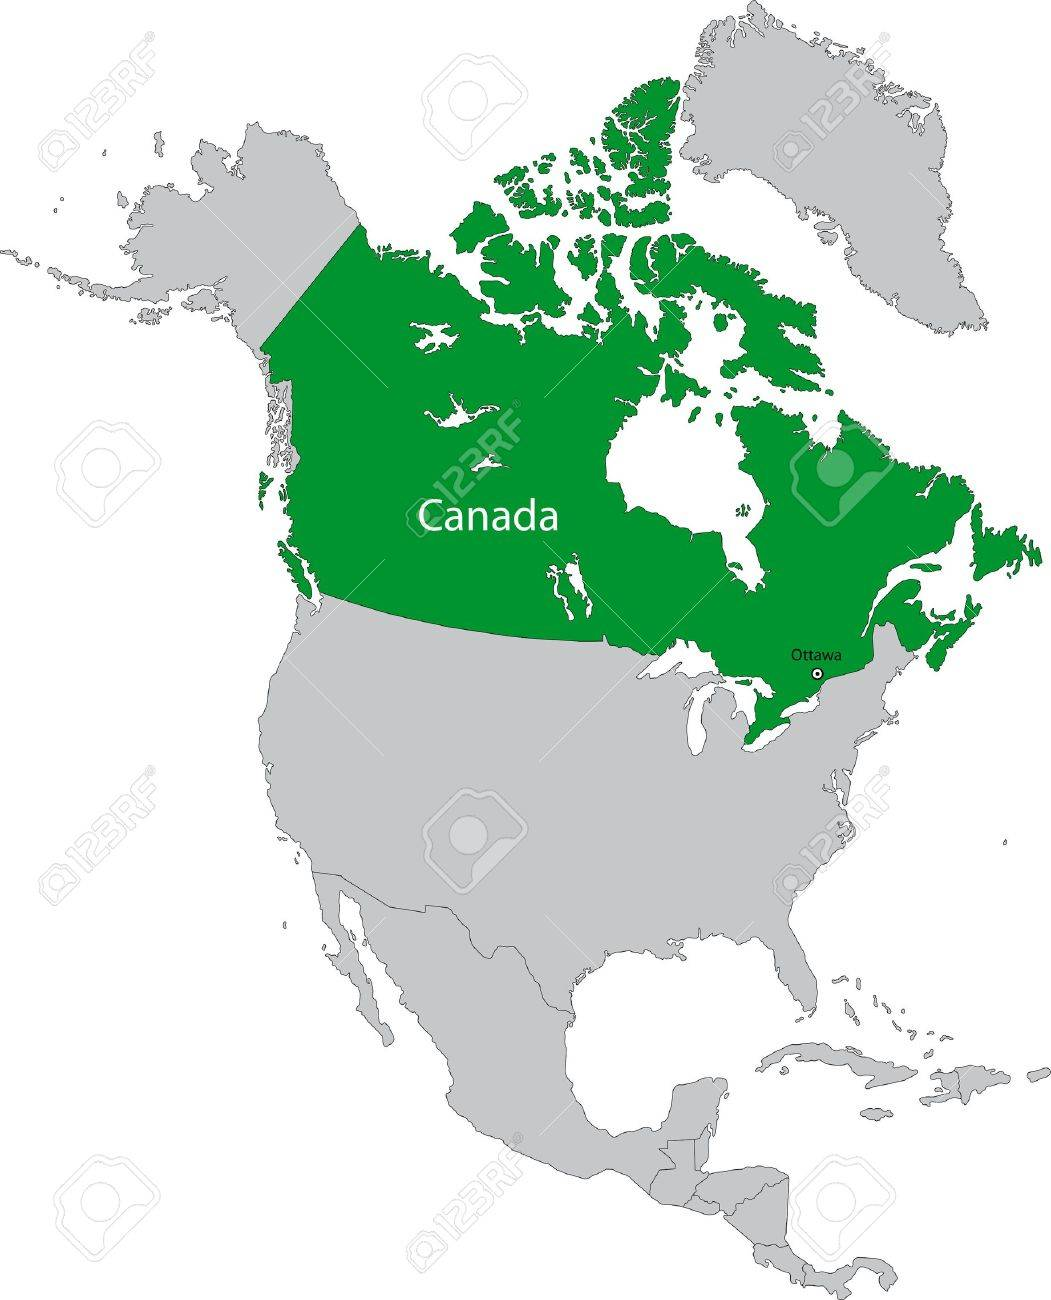 Location Of Canada On The North America Continent Royalty Free - Canada location